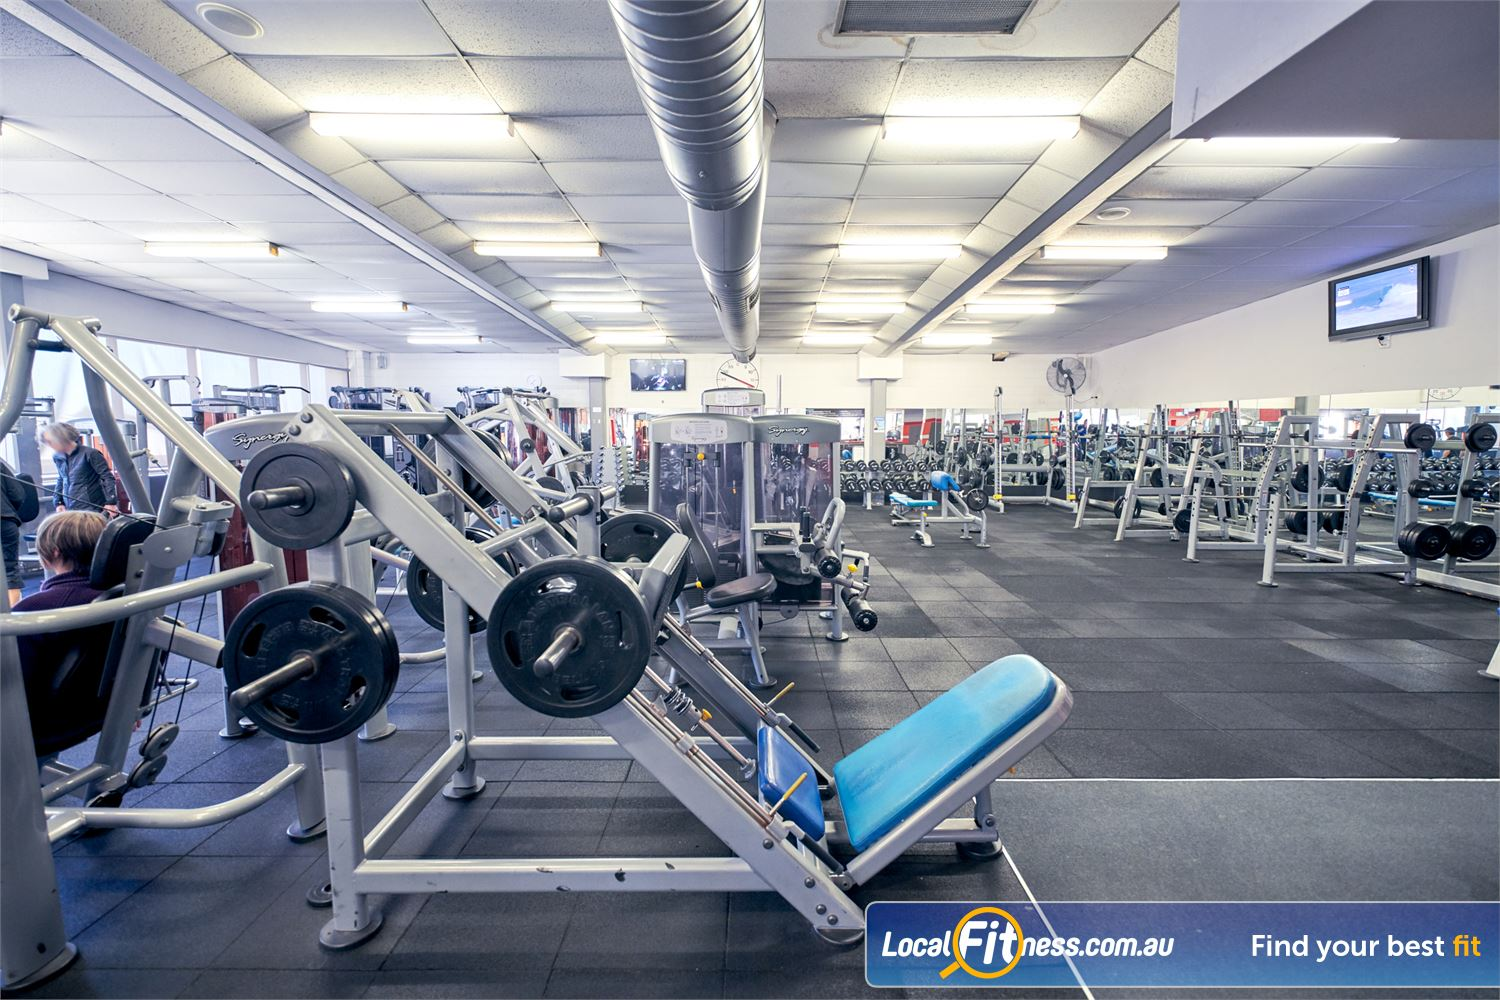 Goodlife Health Clubs Near Canterbury Our free-weights area includes a full range of plate loading machines.